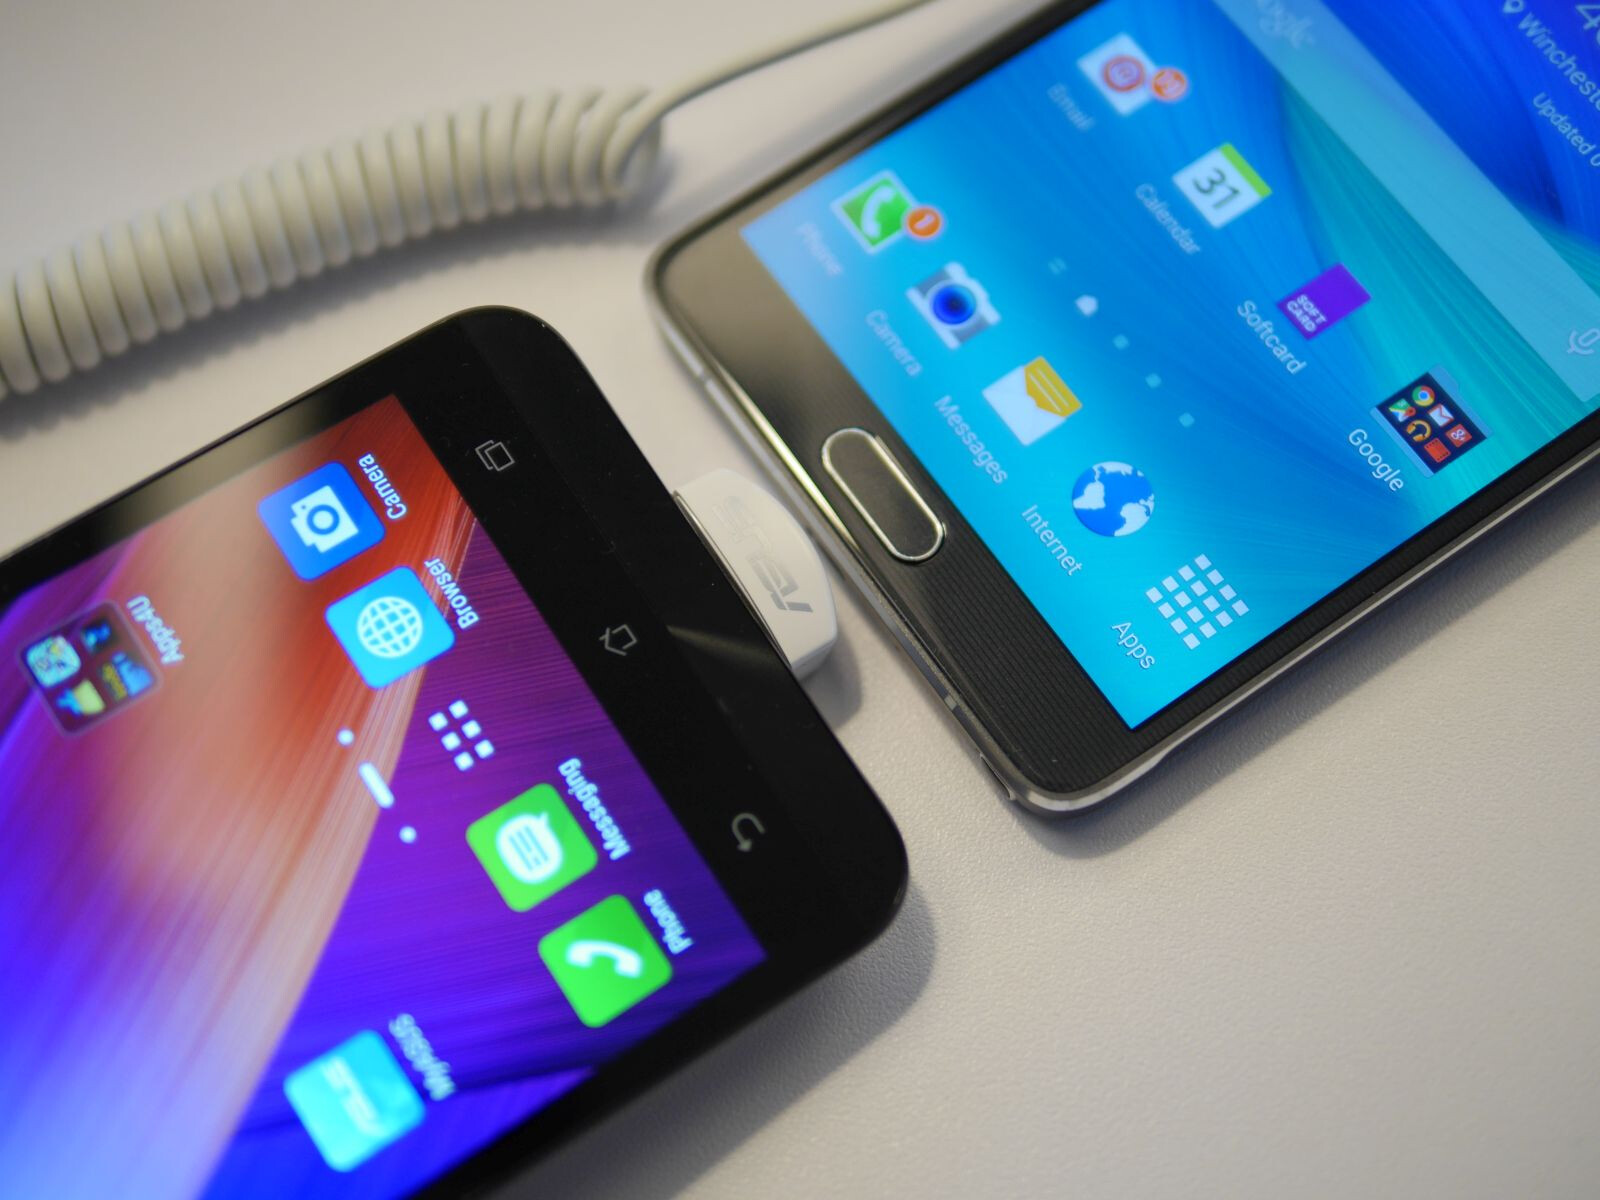 Asus ZenFone 2 Vs Note 4 First Look